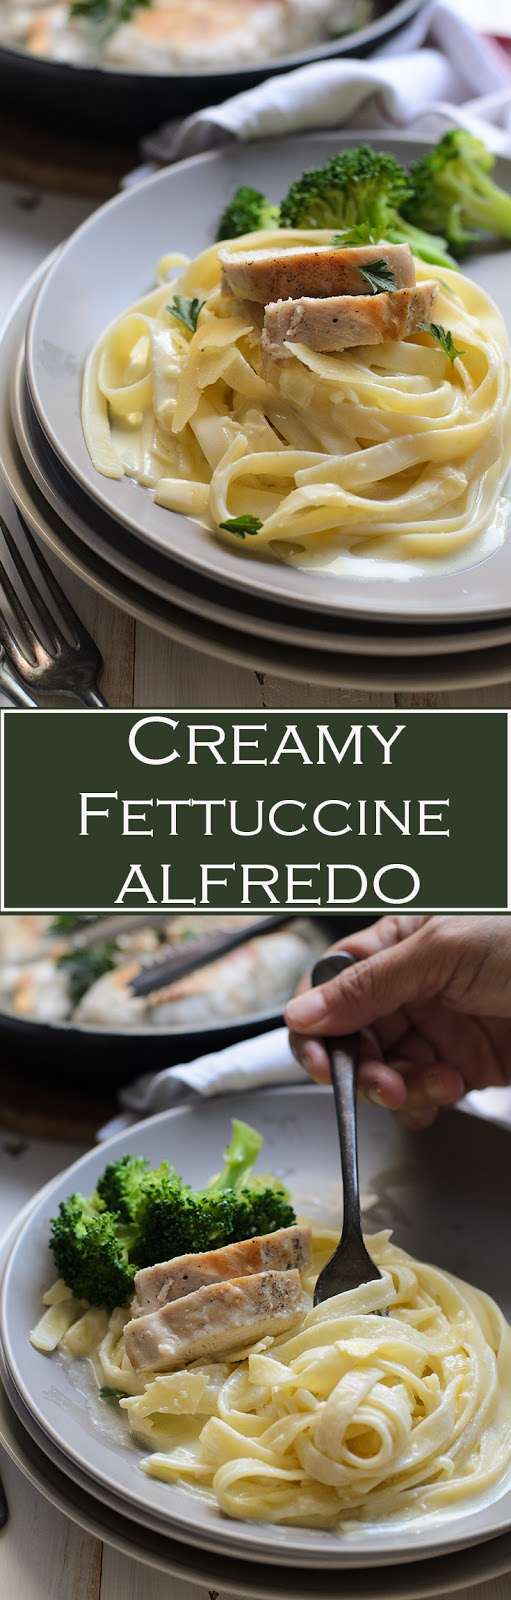 easiest tastiest best ever fettuccine alfredo sauce